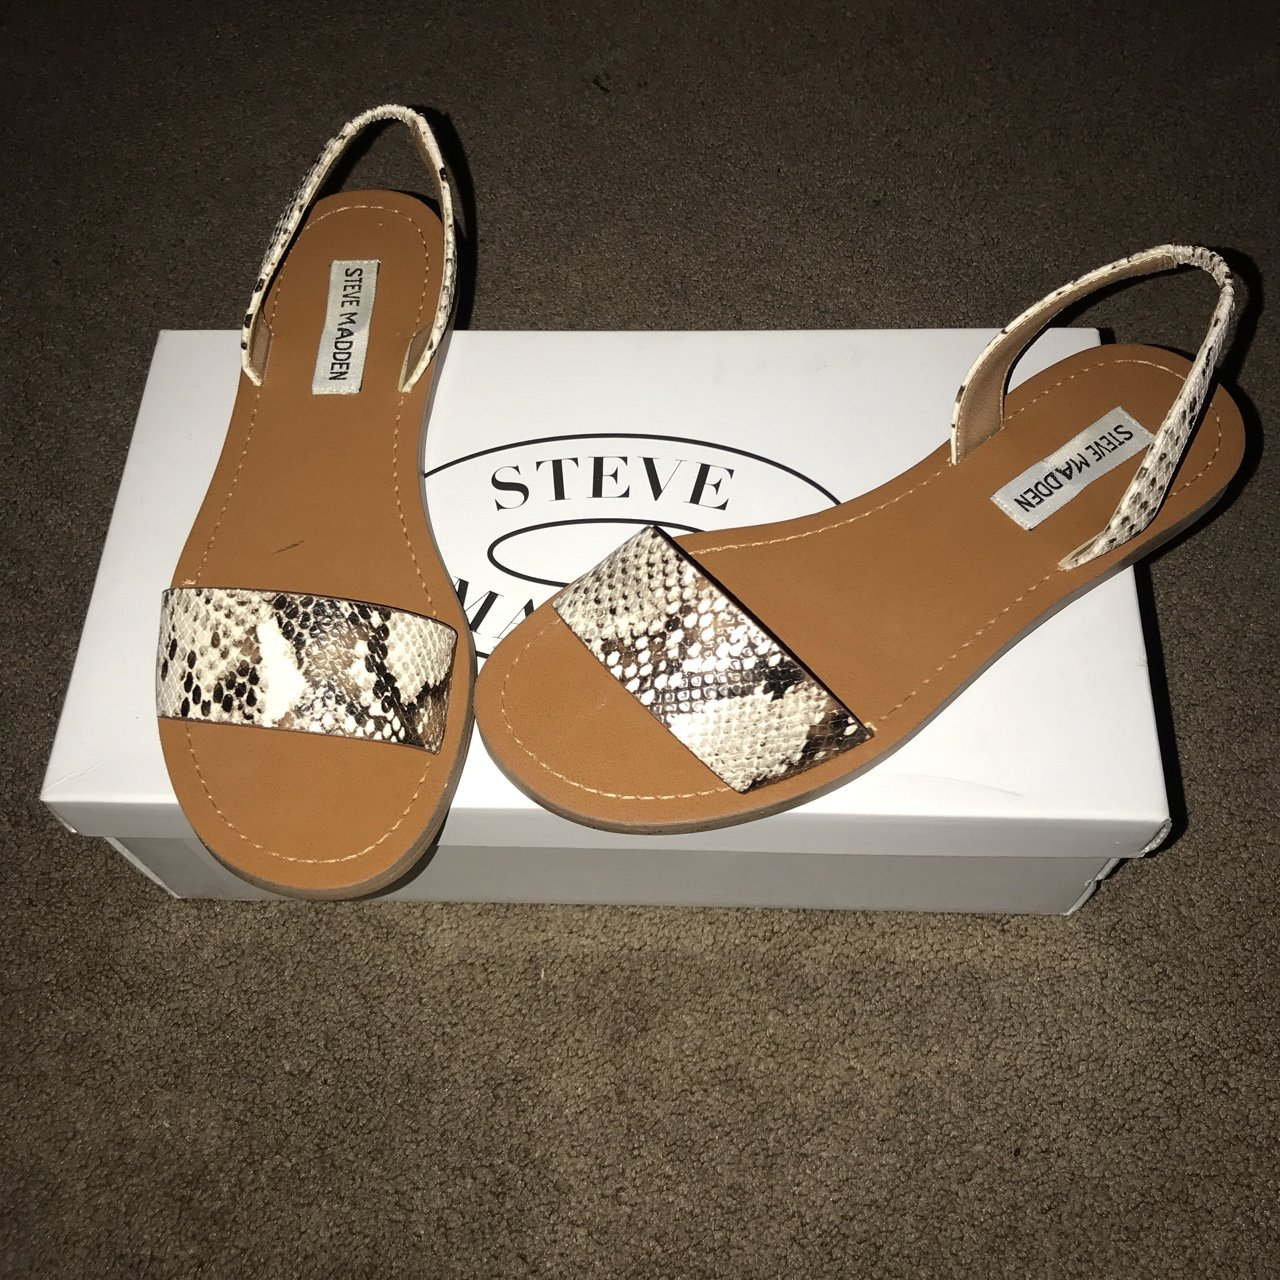 7d4b6d67436 Steve Madden Sandals I only wore these one time they re new - Depop